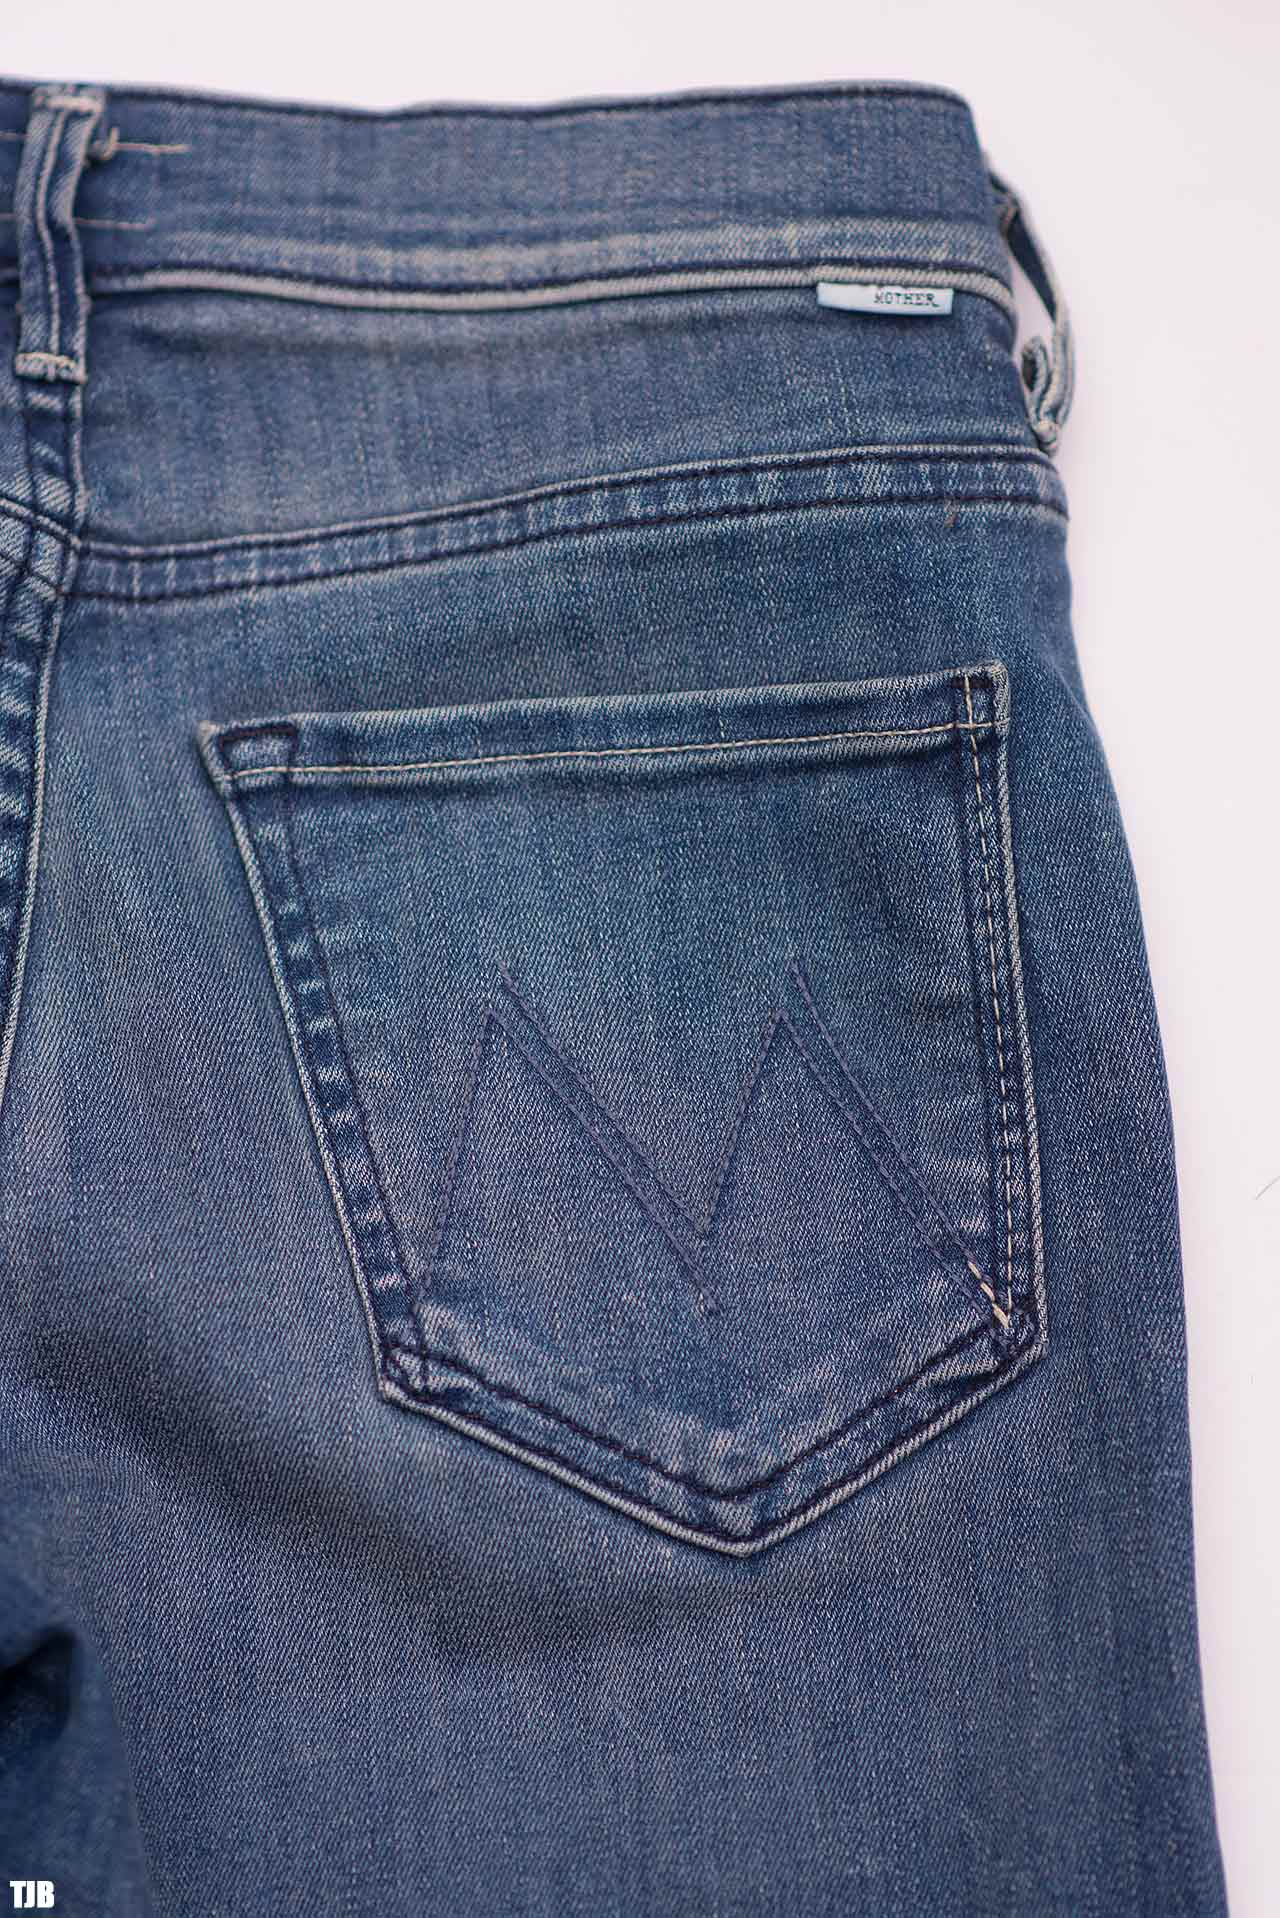 MOTHER The Stunner Zip Ankle Step Fray Jeans In Good Girls Do Review 4